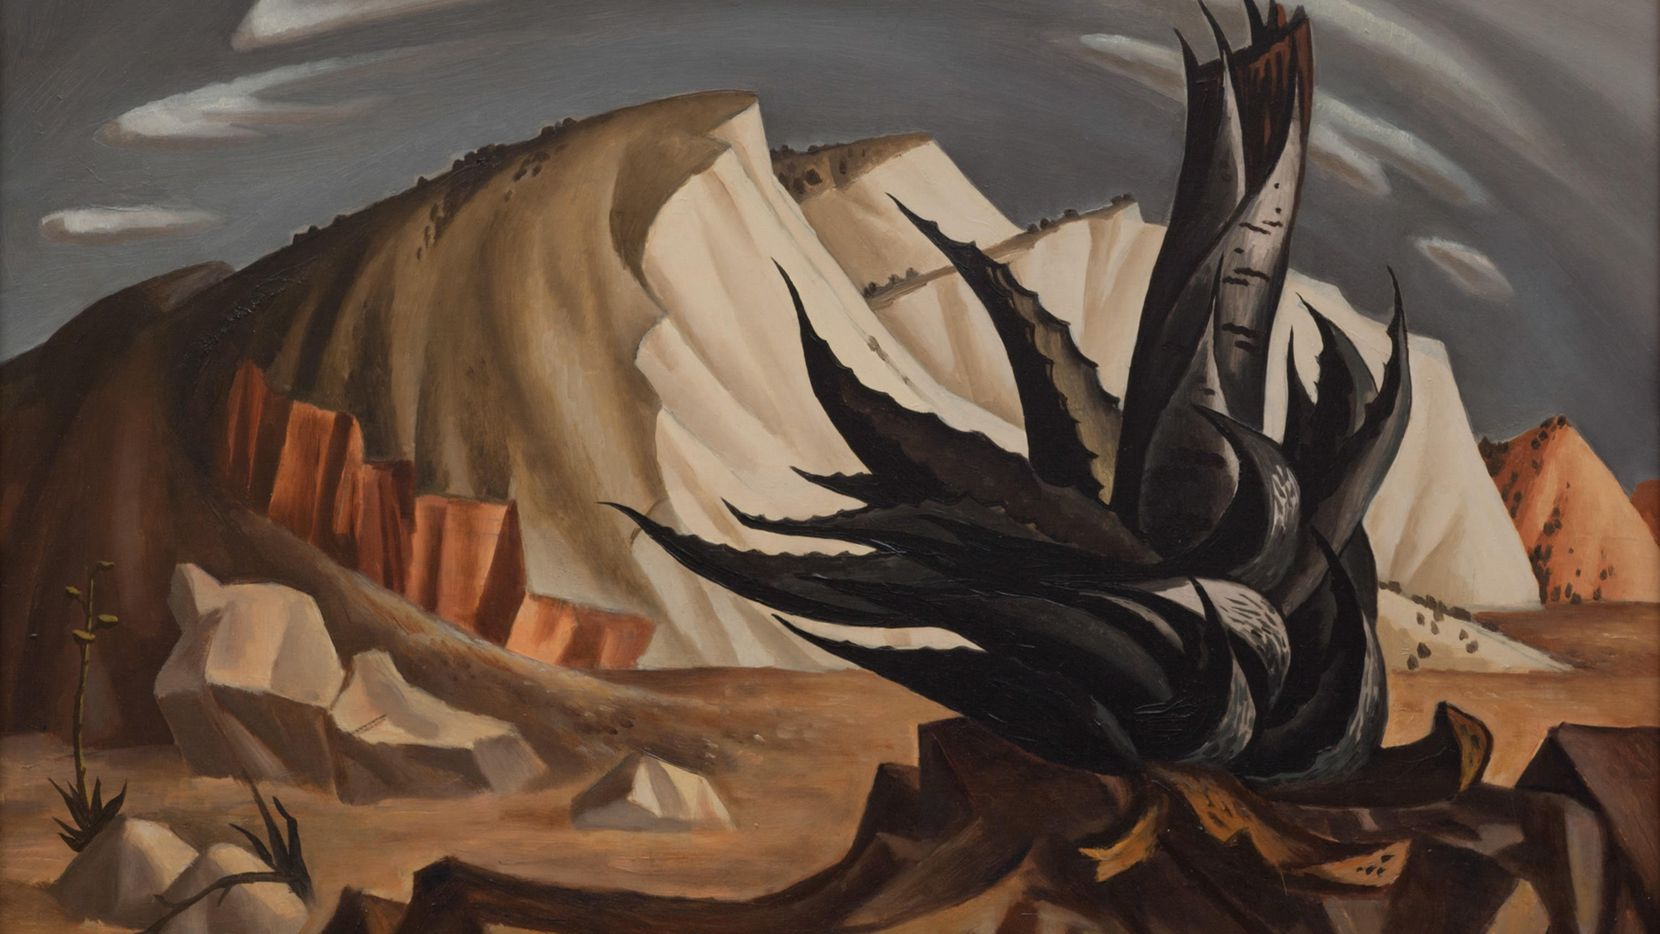 Jerry Bywaters, 'Century Plant,' 1939 . Works like this and others are just some of the artworks the proposed Museum of Texas Art (MoTA) hopes to show, should Fair Park First approve its plan for renovating the historic building built in 1936 for the Dallas Museum of Fine Art.